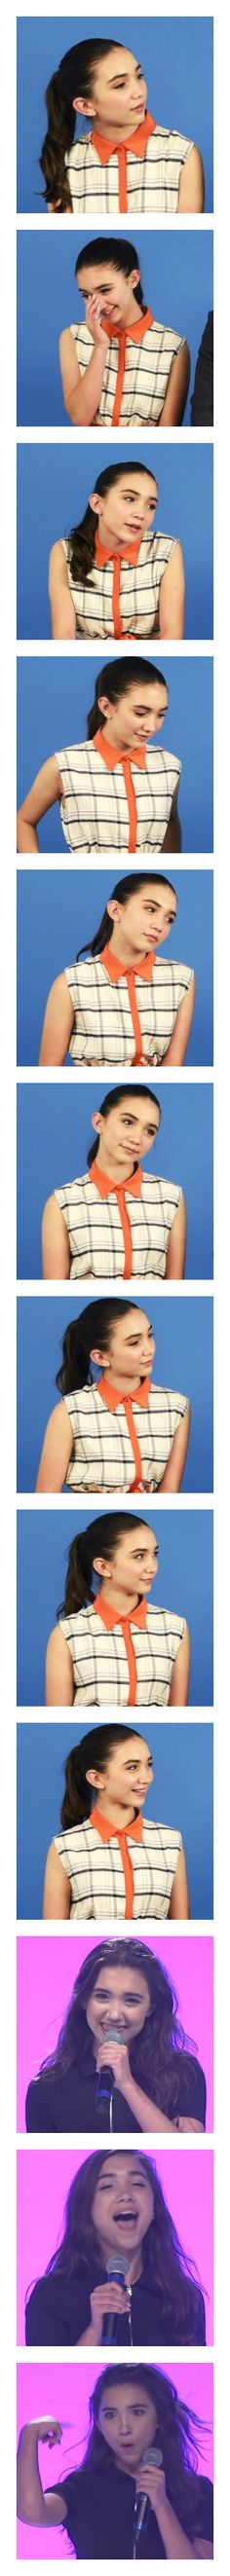 """""""▬ rowan blanchard. ▬"""" by r-oyal-clipper ❤ liked on Polyvore featuring icons, Clipped, girlmeetsworld, rowanblanchard, rowan blanchard, girls and peeps"""